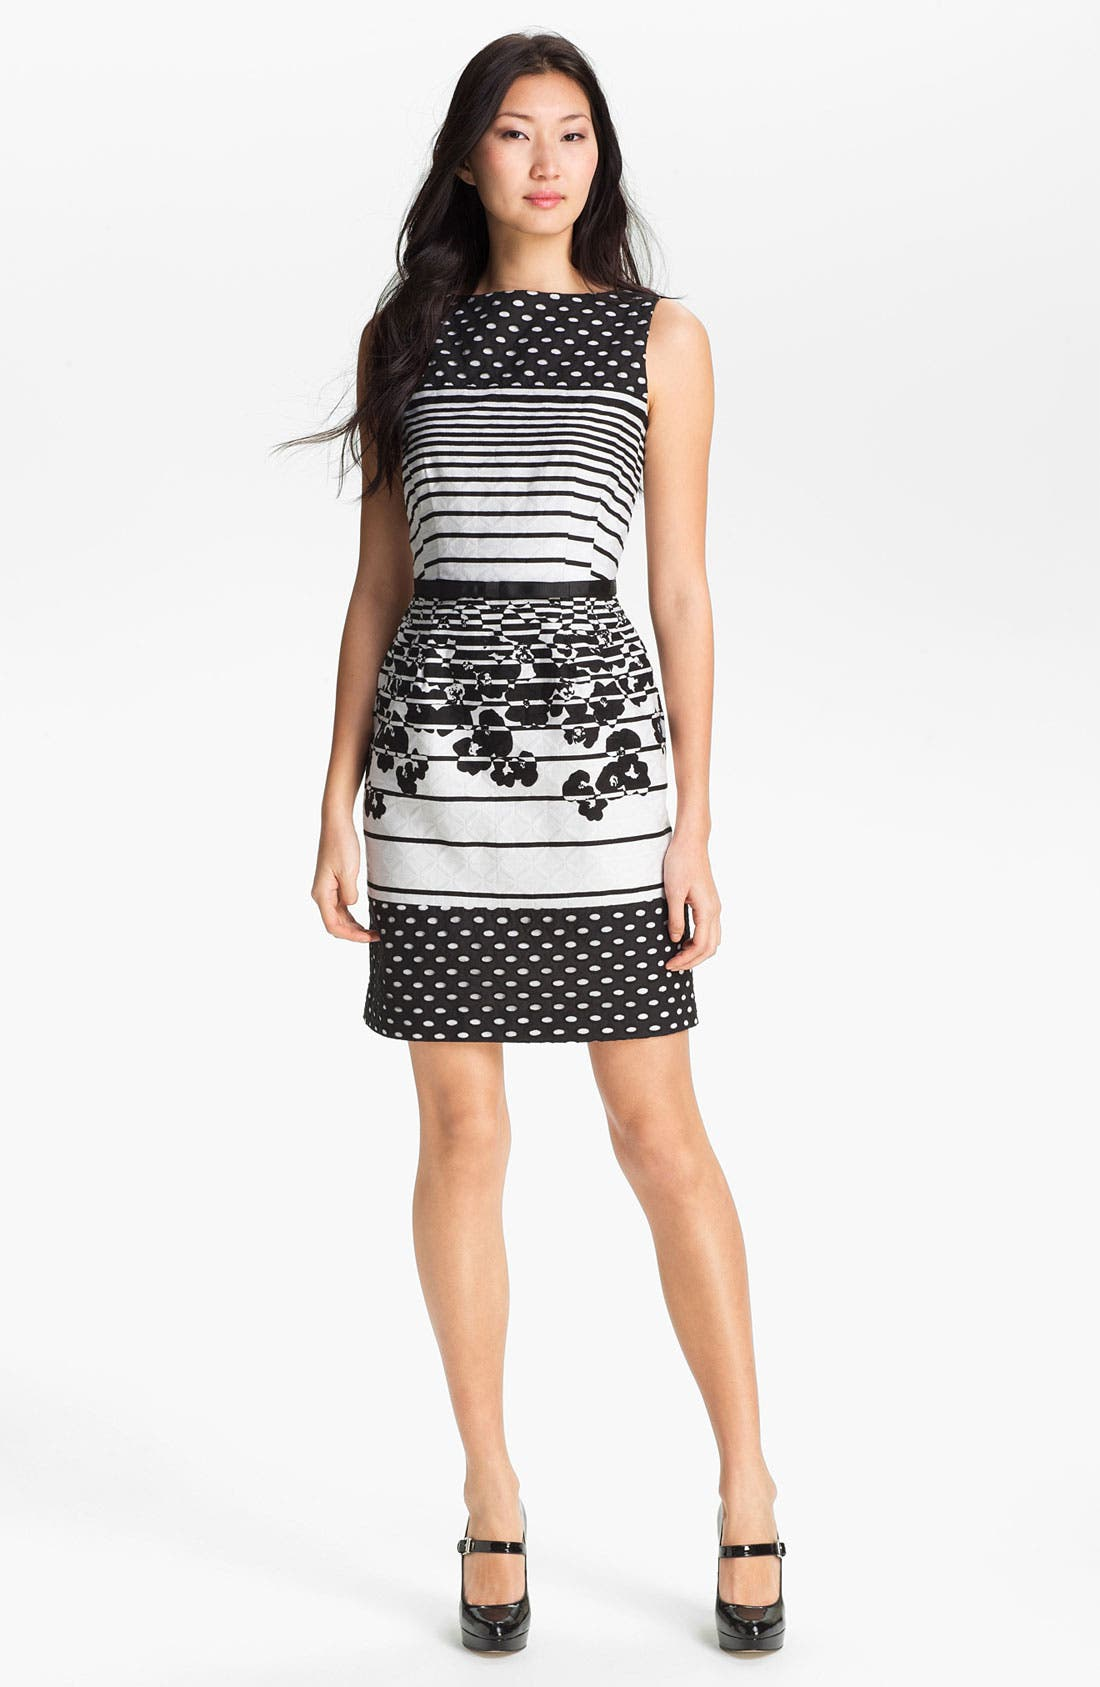 Alternate Image 1 Selected - Taylor Dresses Jacquard Print Sheath Dress